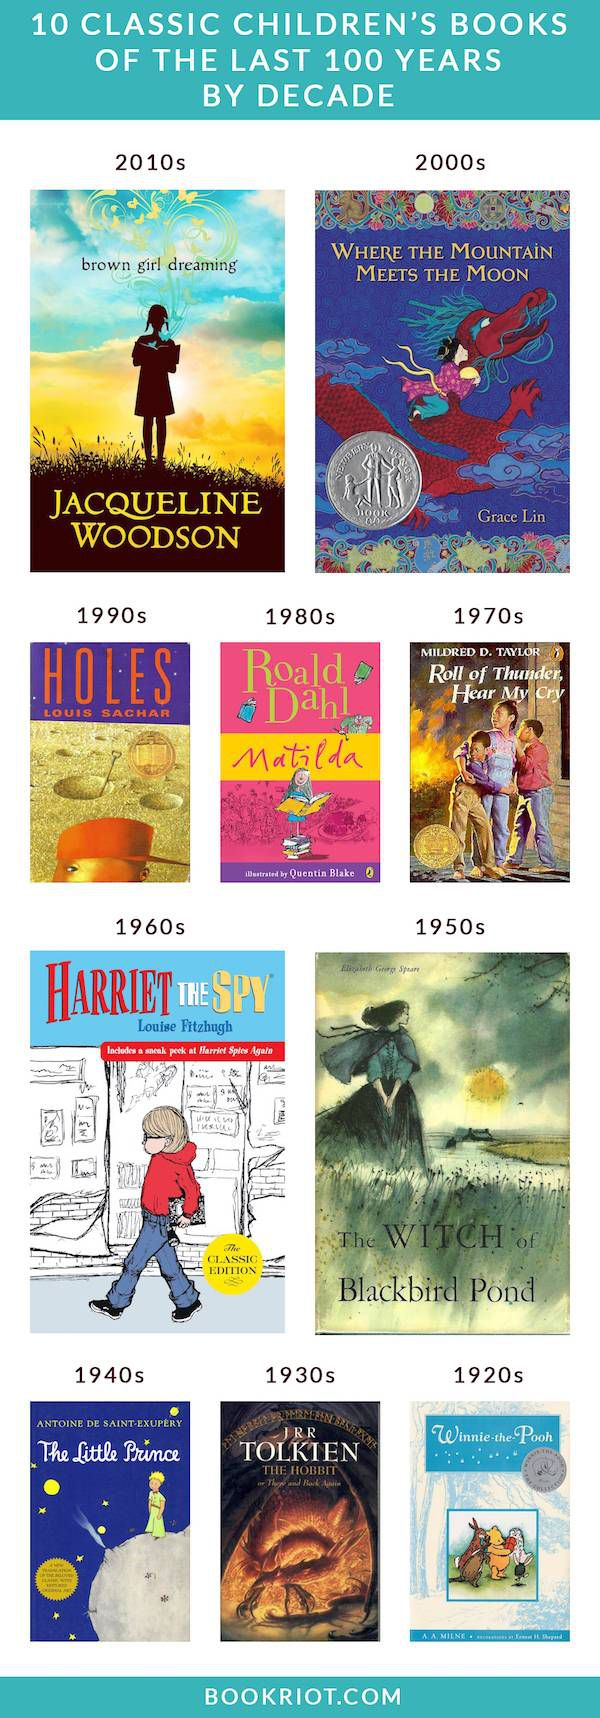 10 Classic Children's Books of the Last 100 Years (by Decade)